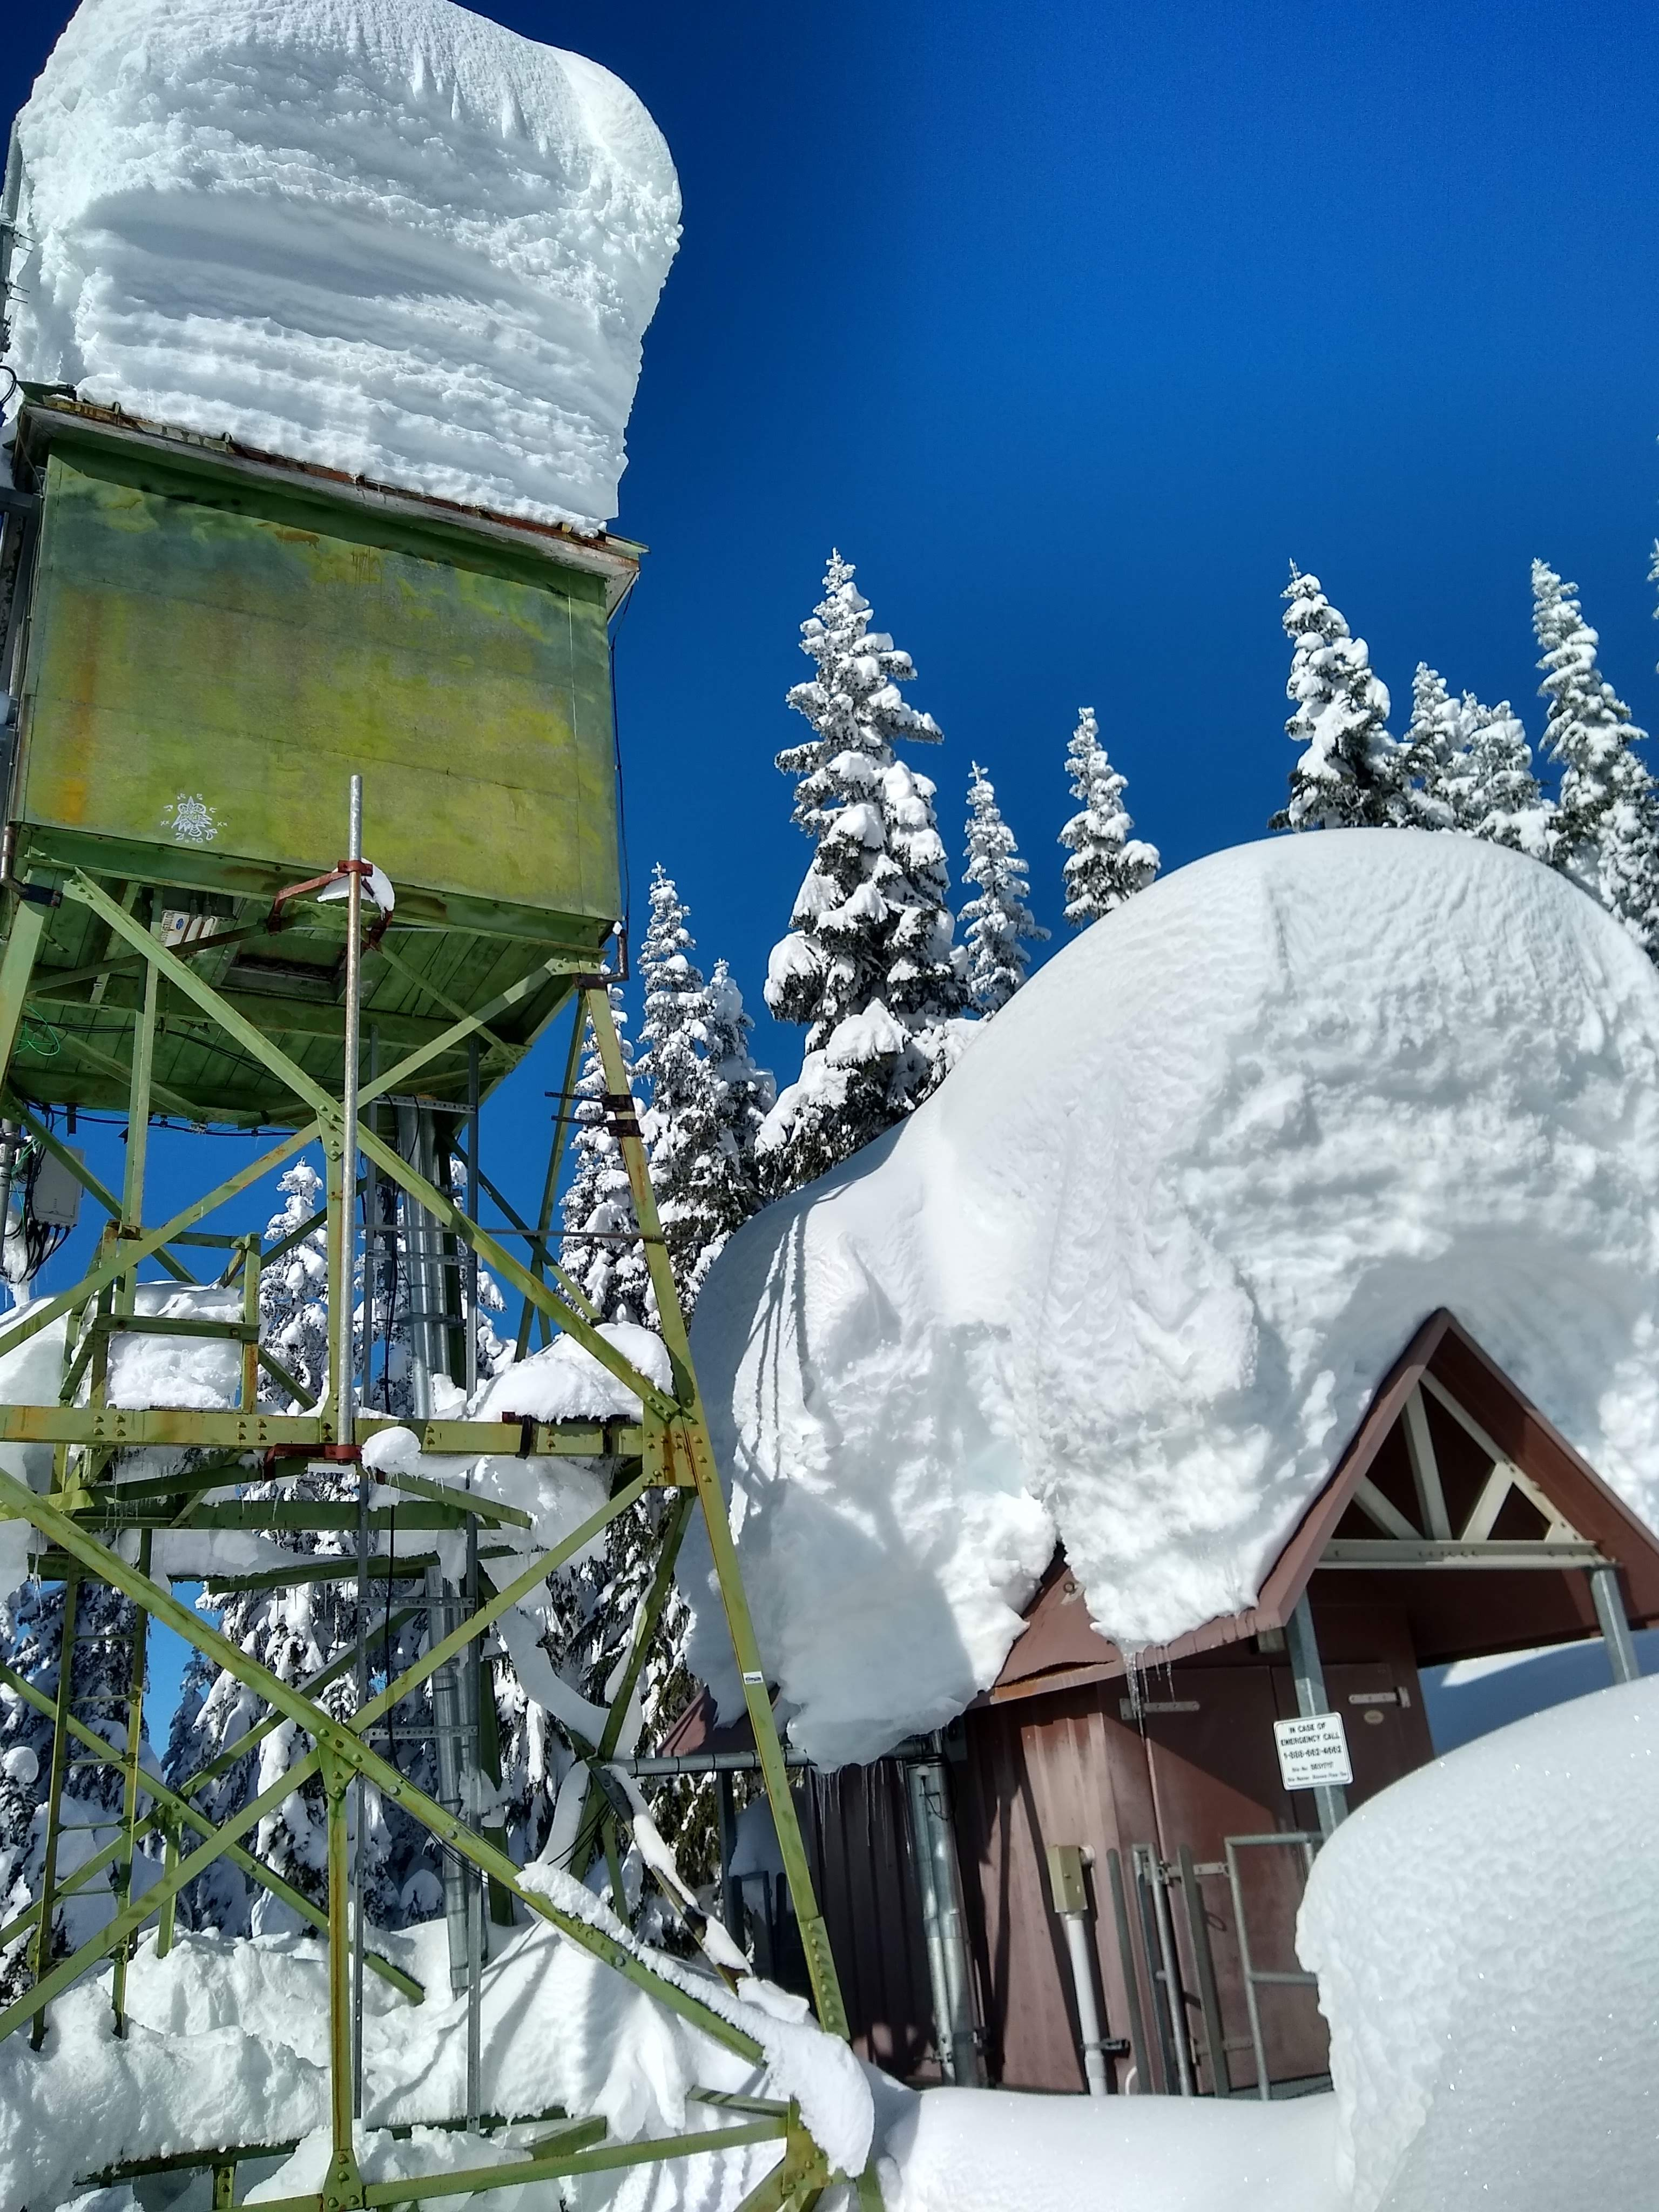 A communications tower covered in many feet of snow in the forest along the trail